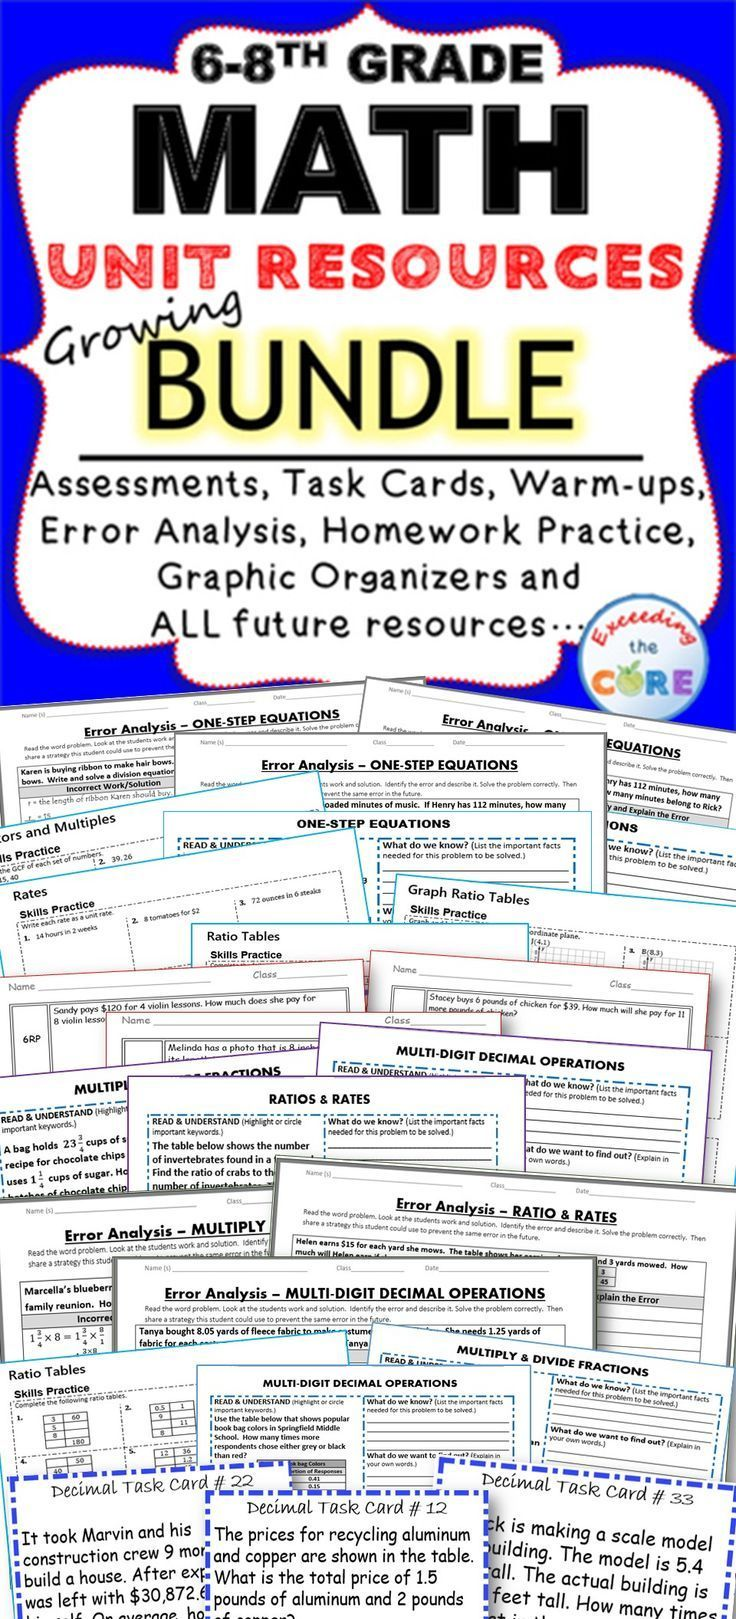 Middle School MATH GROWING BUNDLE Core} (With